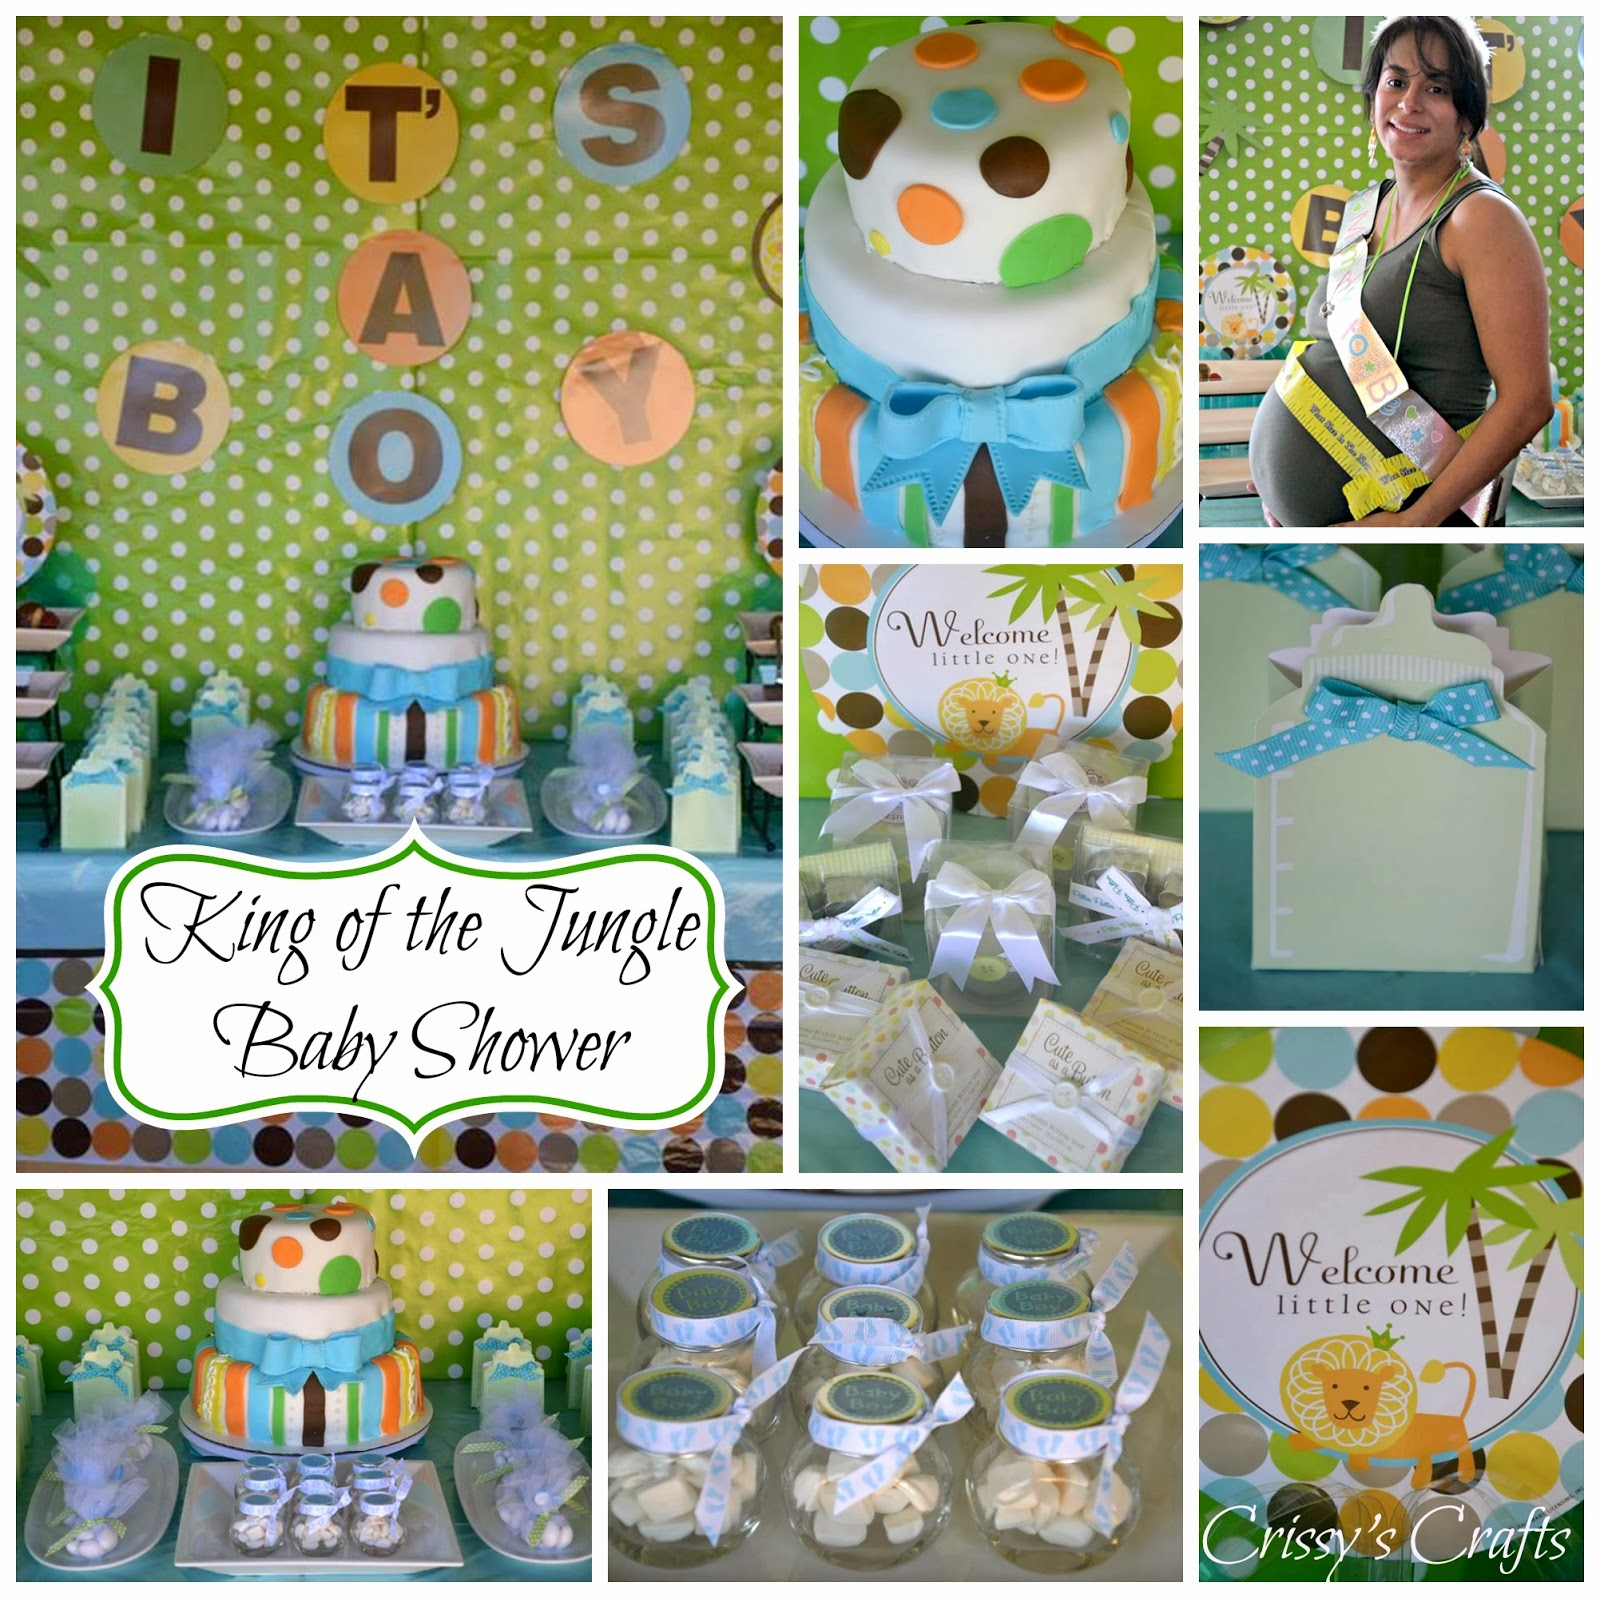 Crissy's Crafts: King Of The Jungle Baby Shower